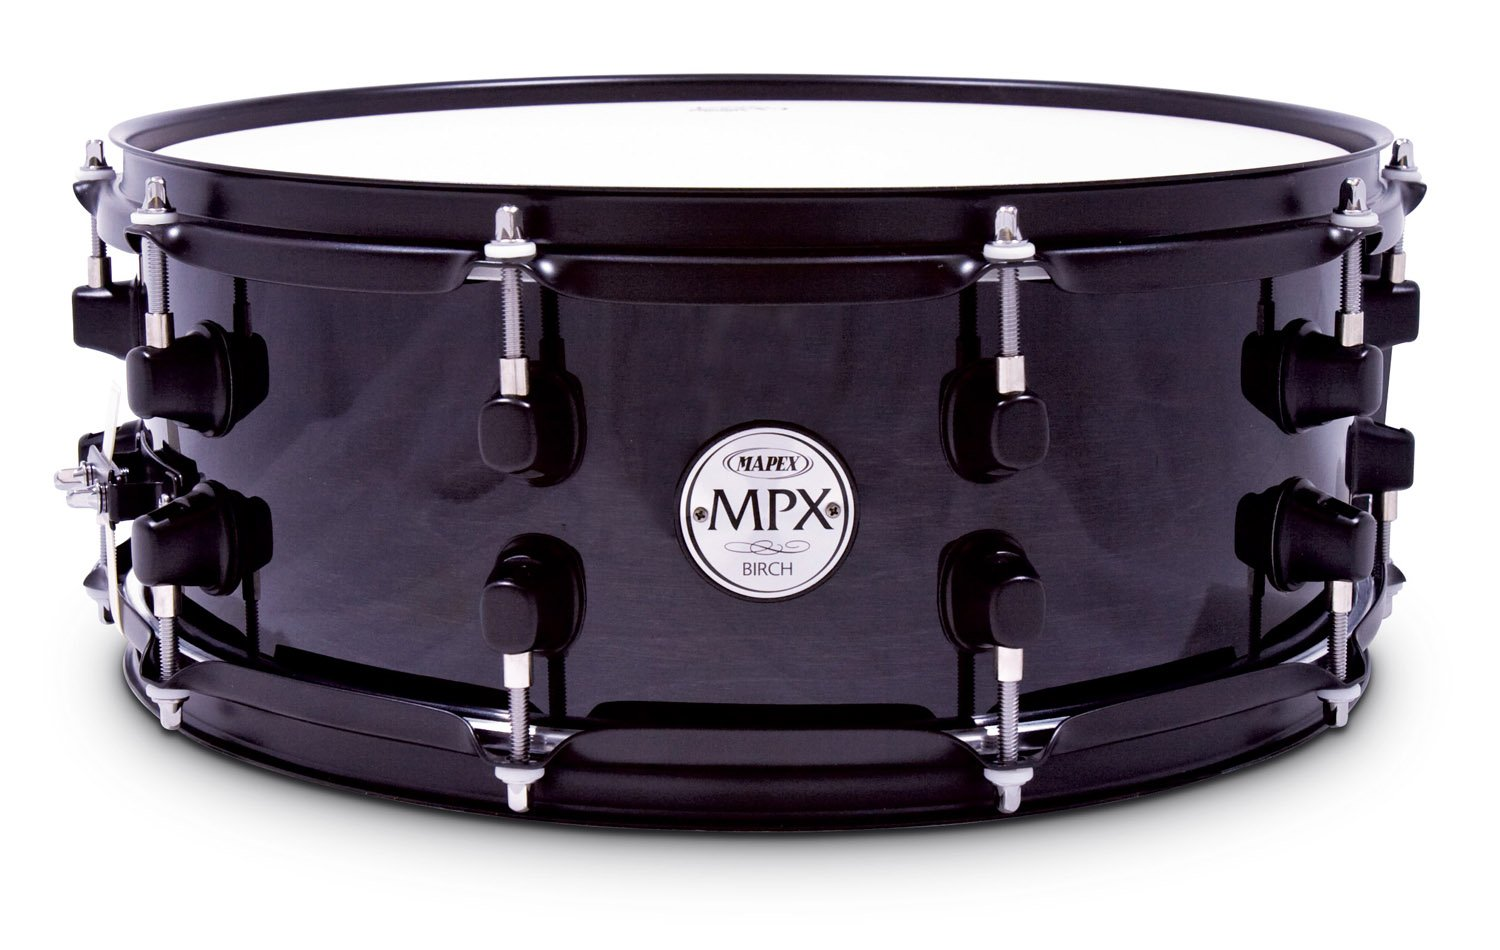 Mapex MPX 14 inch x 5.5 inch all birch snare drum in Transparent Black lacquer finish with black hardware by Mapex